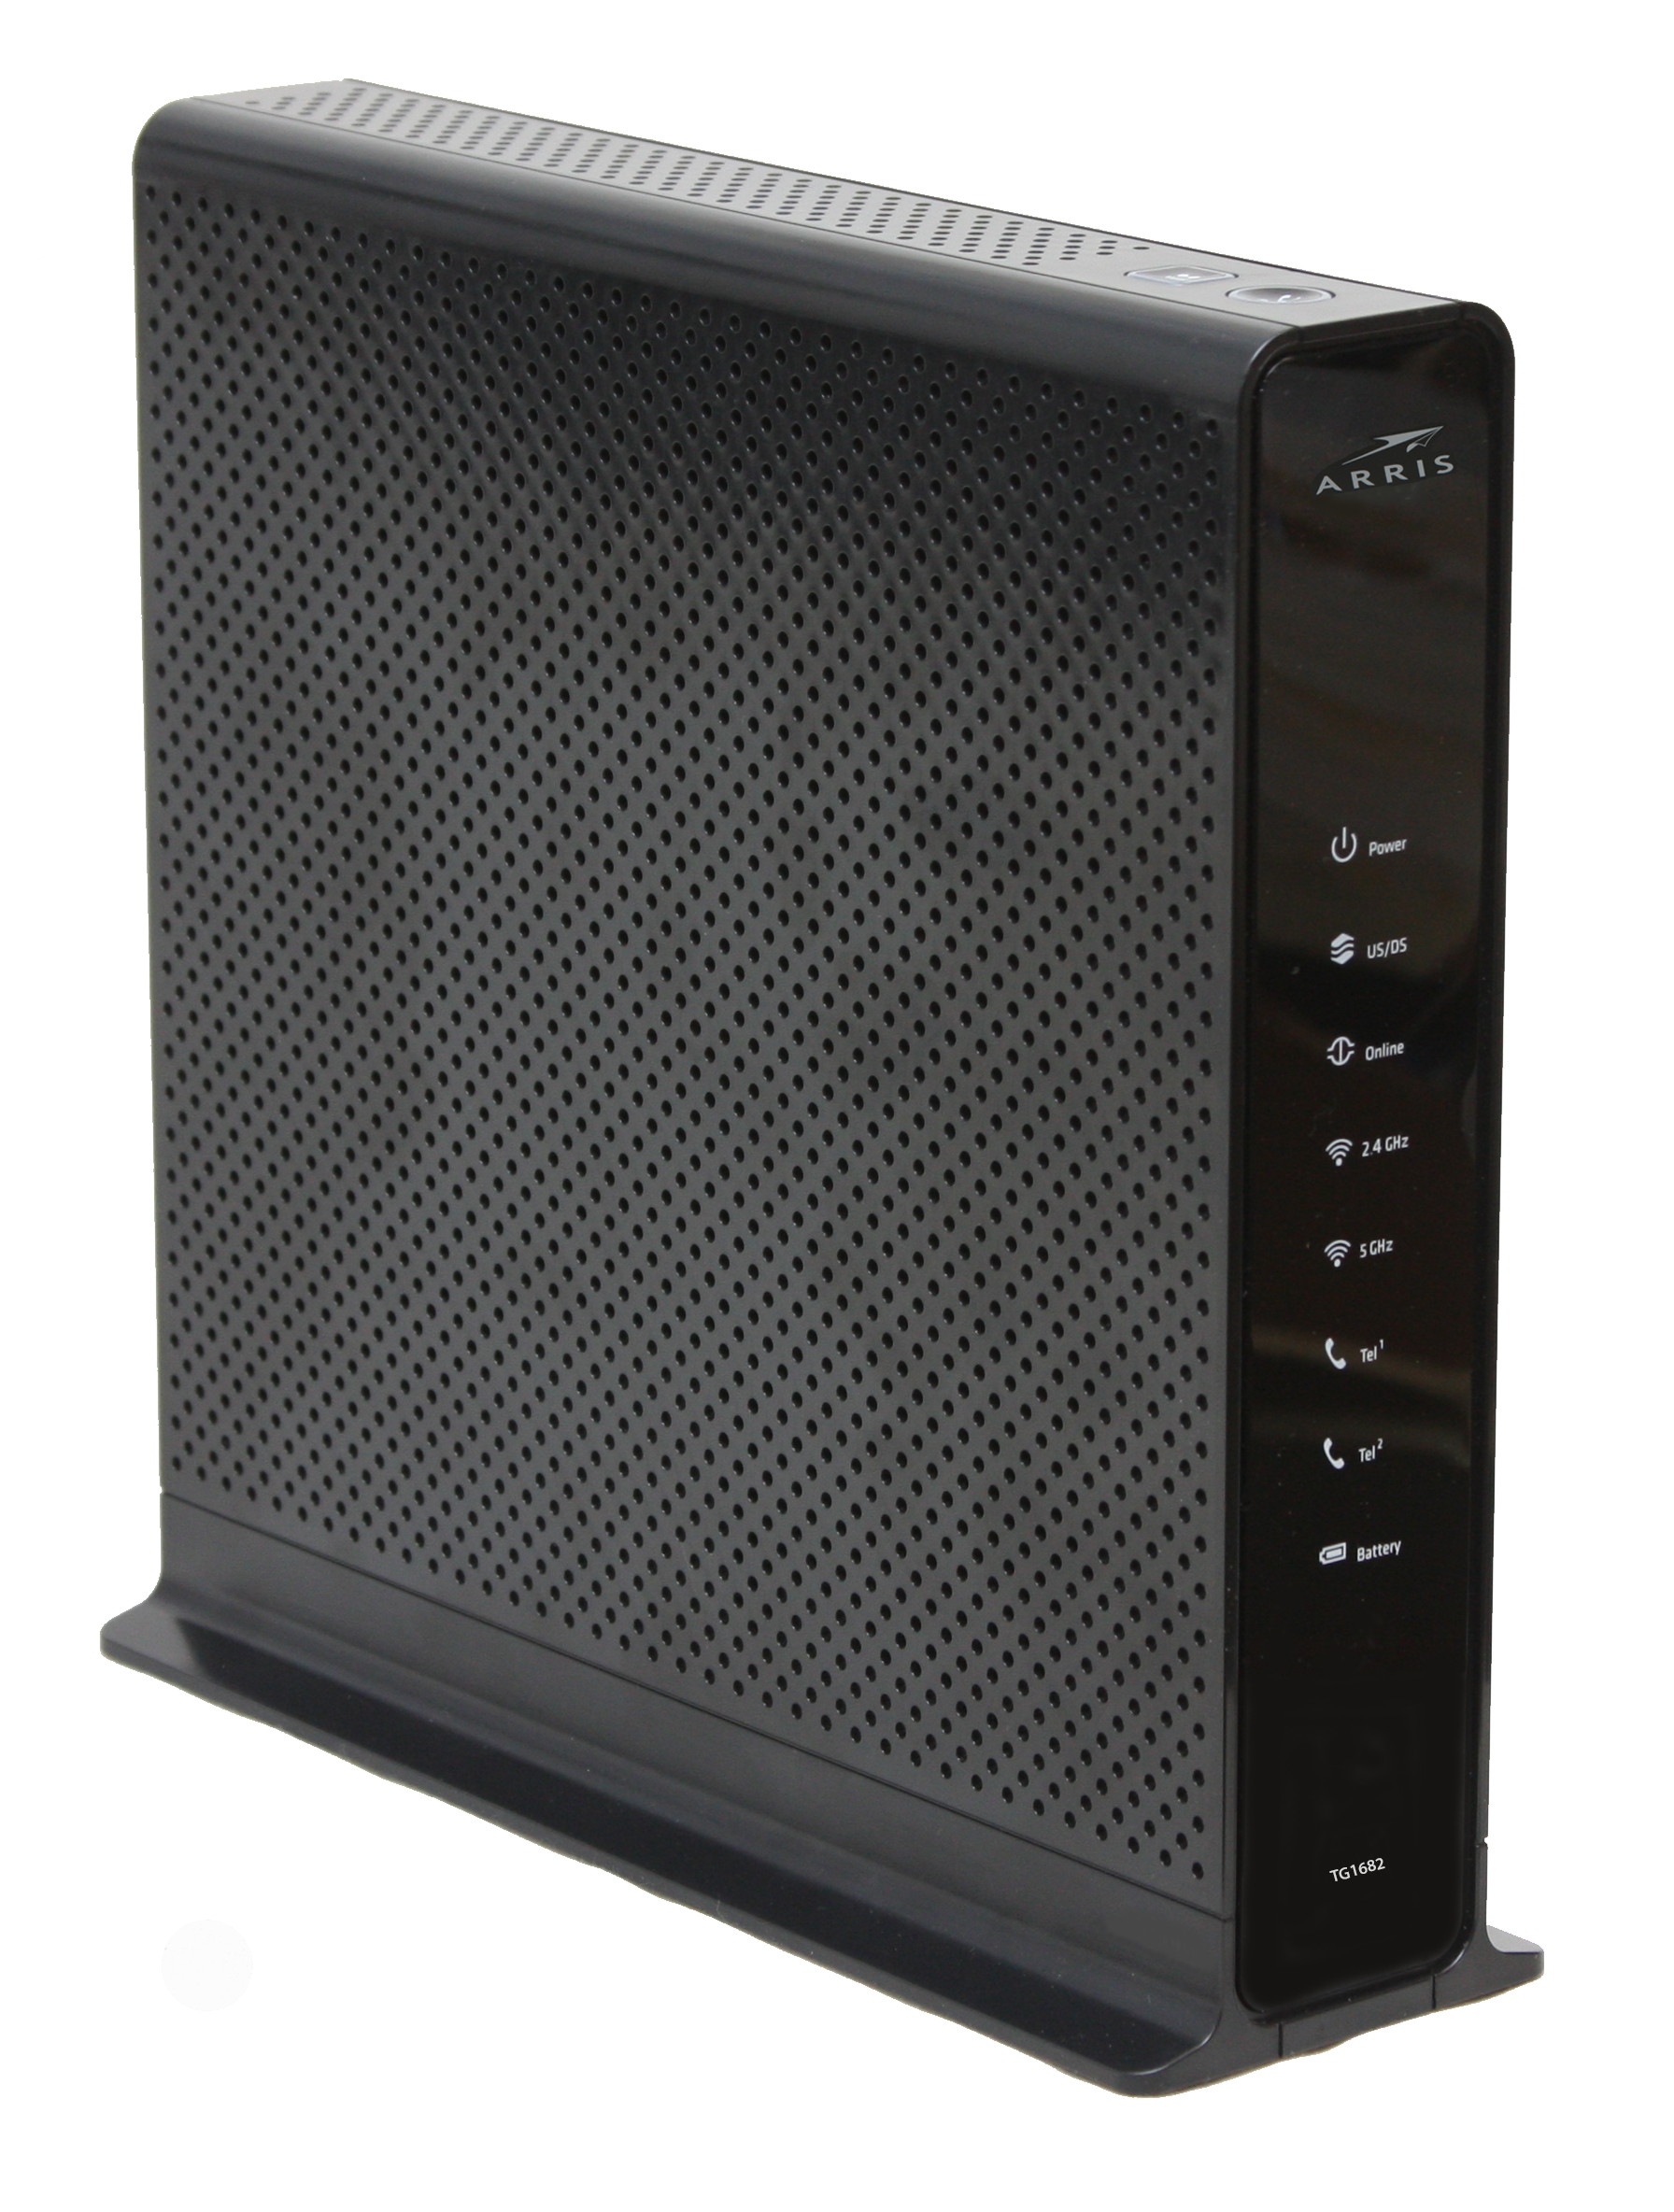 Comcast Arris Touchstone Gateway Devices are vulnerable